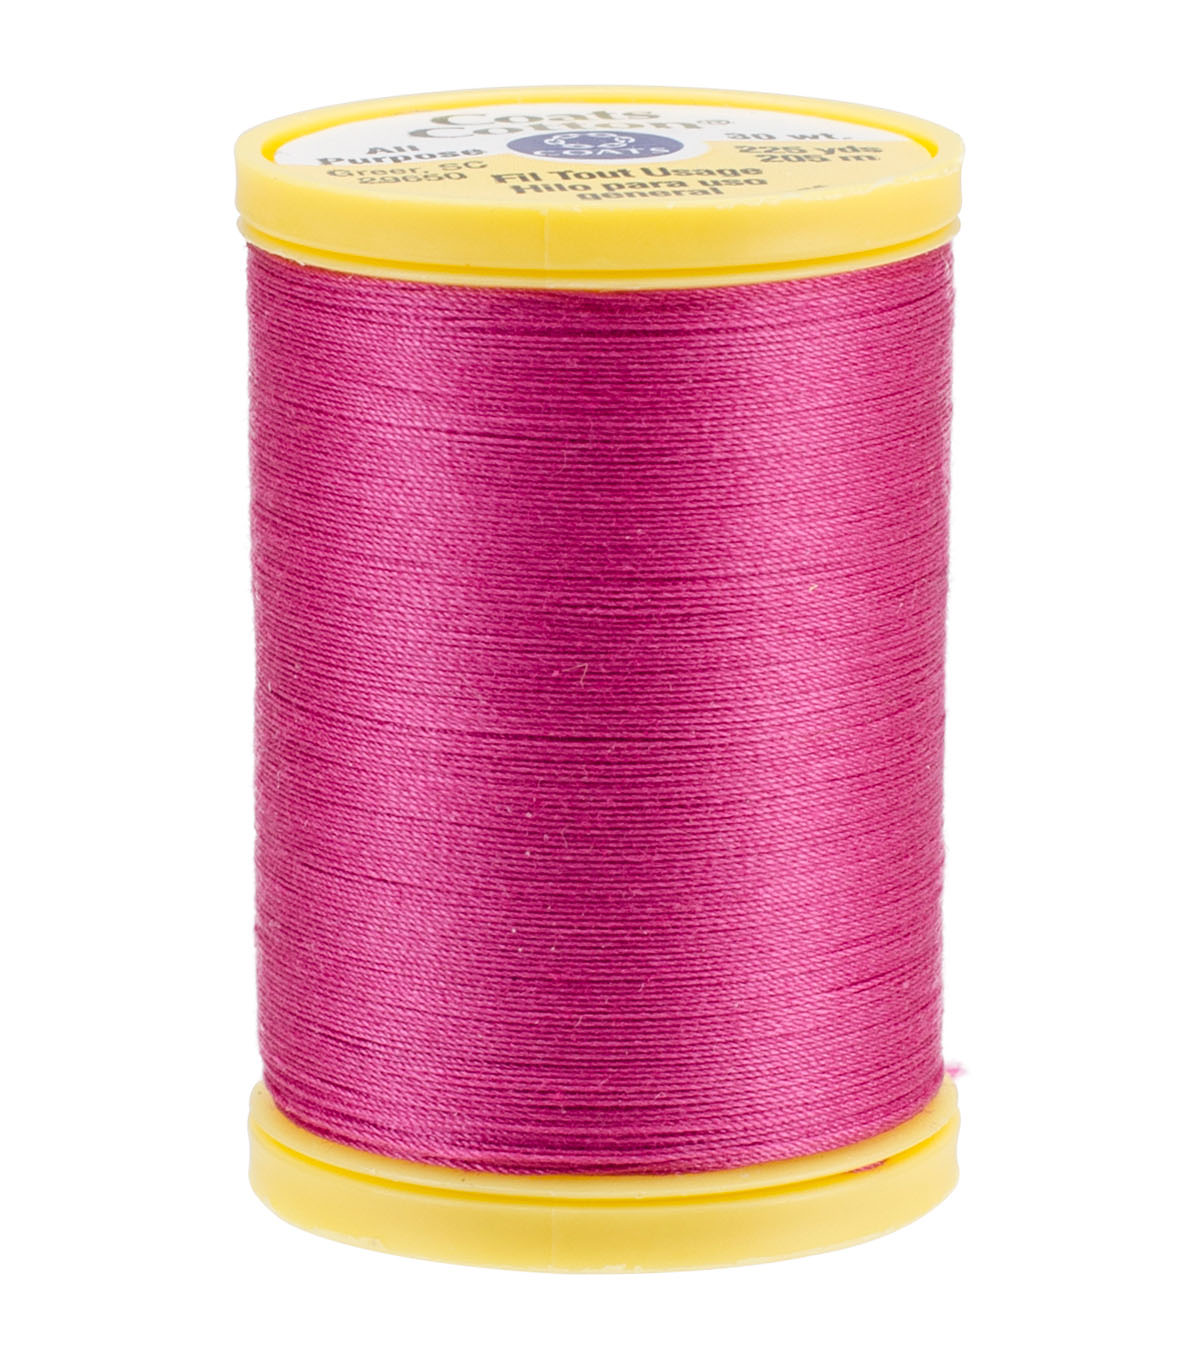 Coats & Clark All Purpose Cotton Thread-225yds